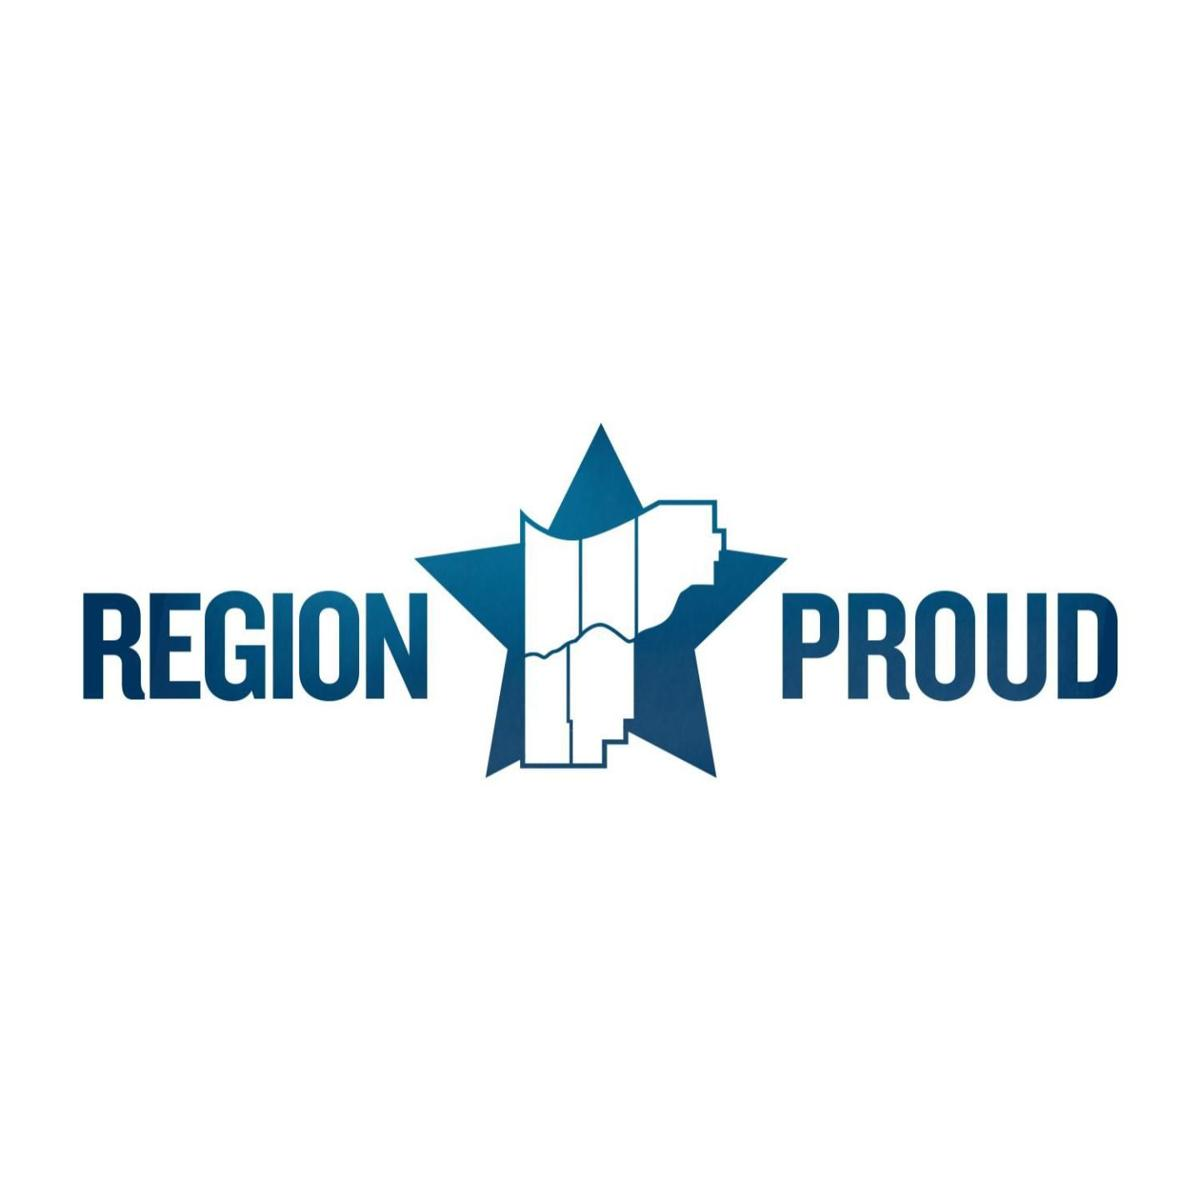 Region Proud logo